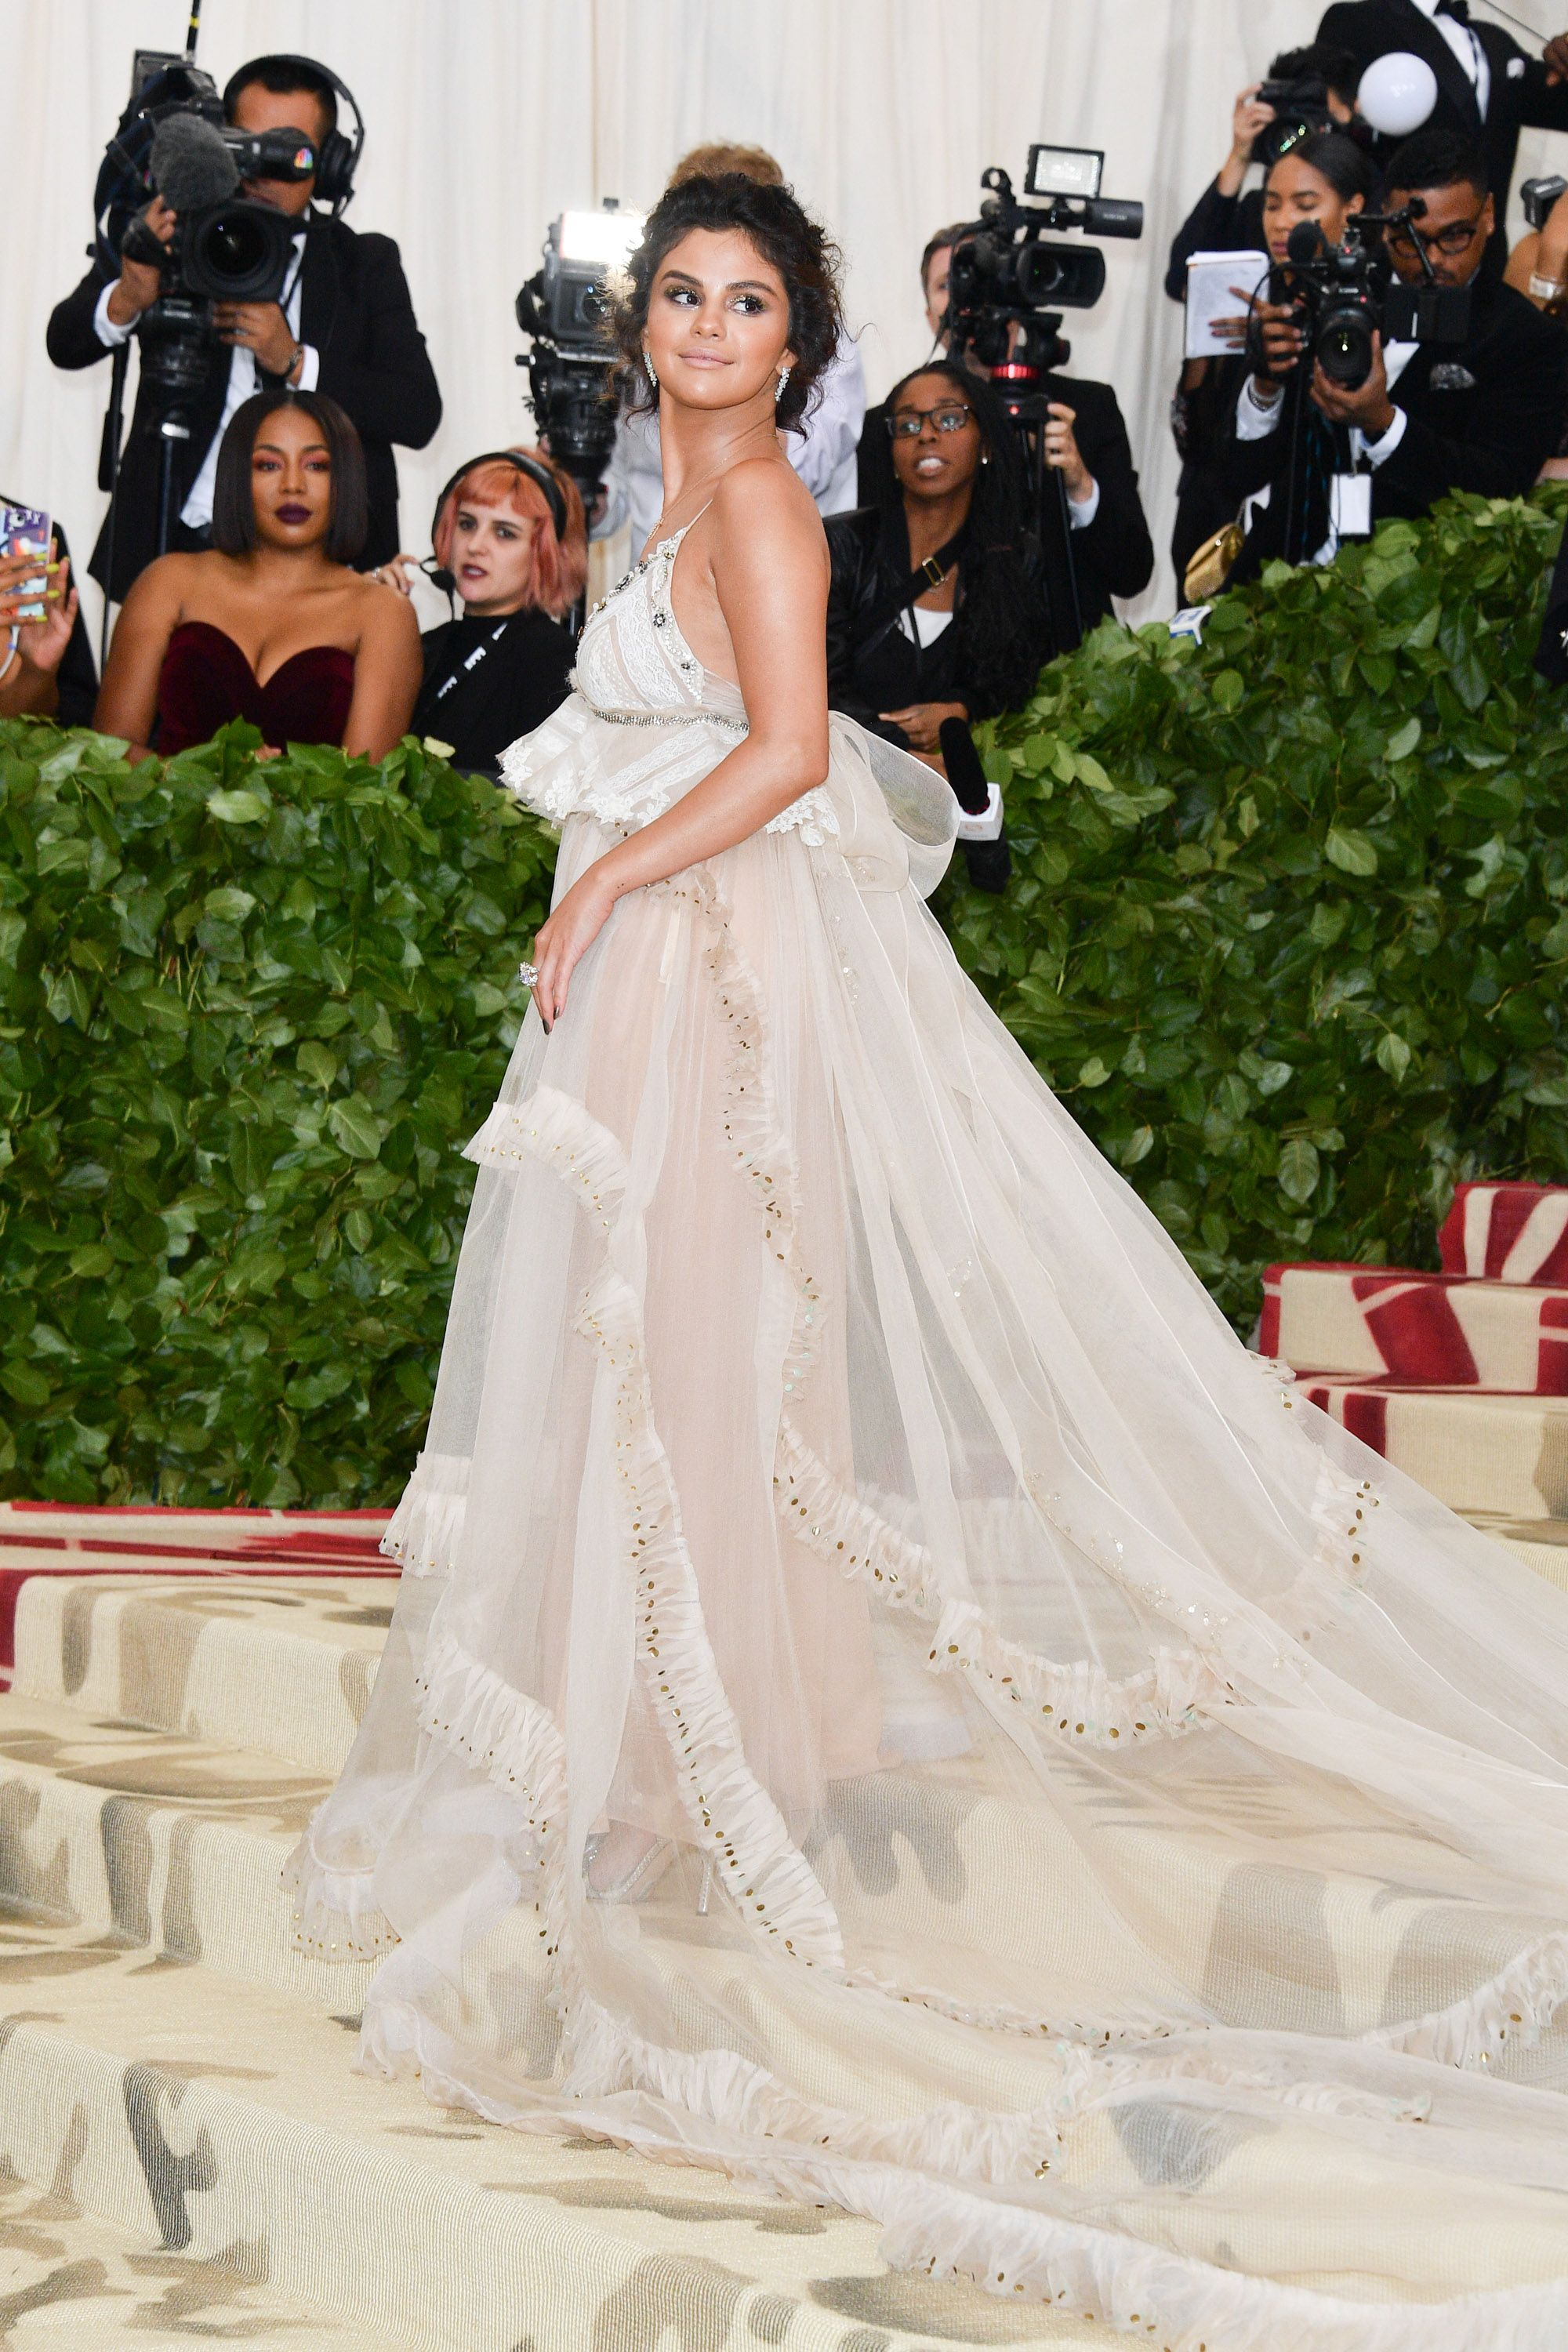 Selena Gomez Gomez has attended every Met Gala since 2014, but this year the actress and singer is skipping the lavish event. Her makeup artist, Hung Vanngo, confirmed in a comment to a fan on Instagram that his famous client would not be in attendance.